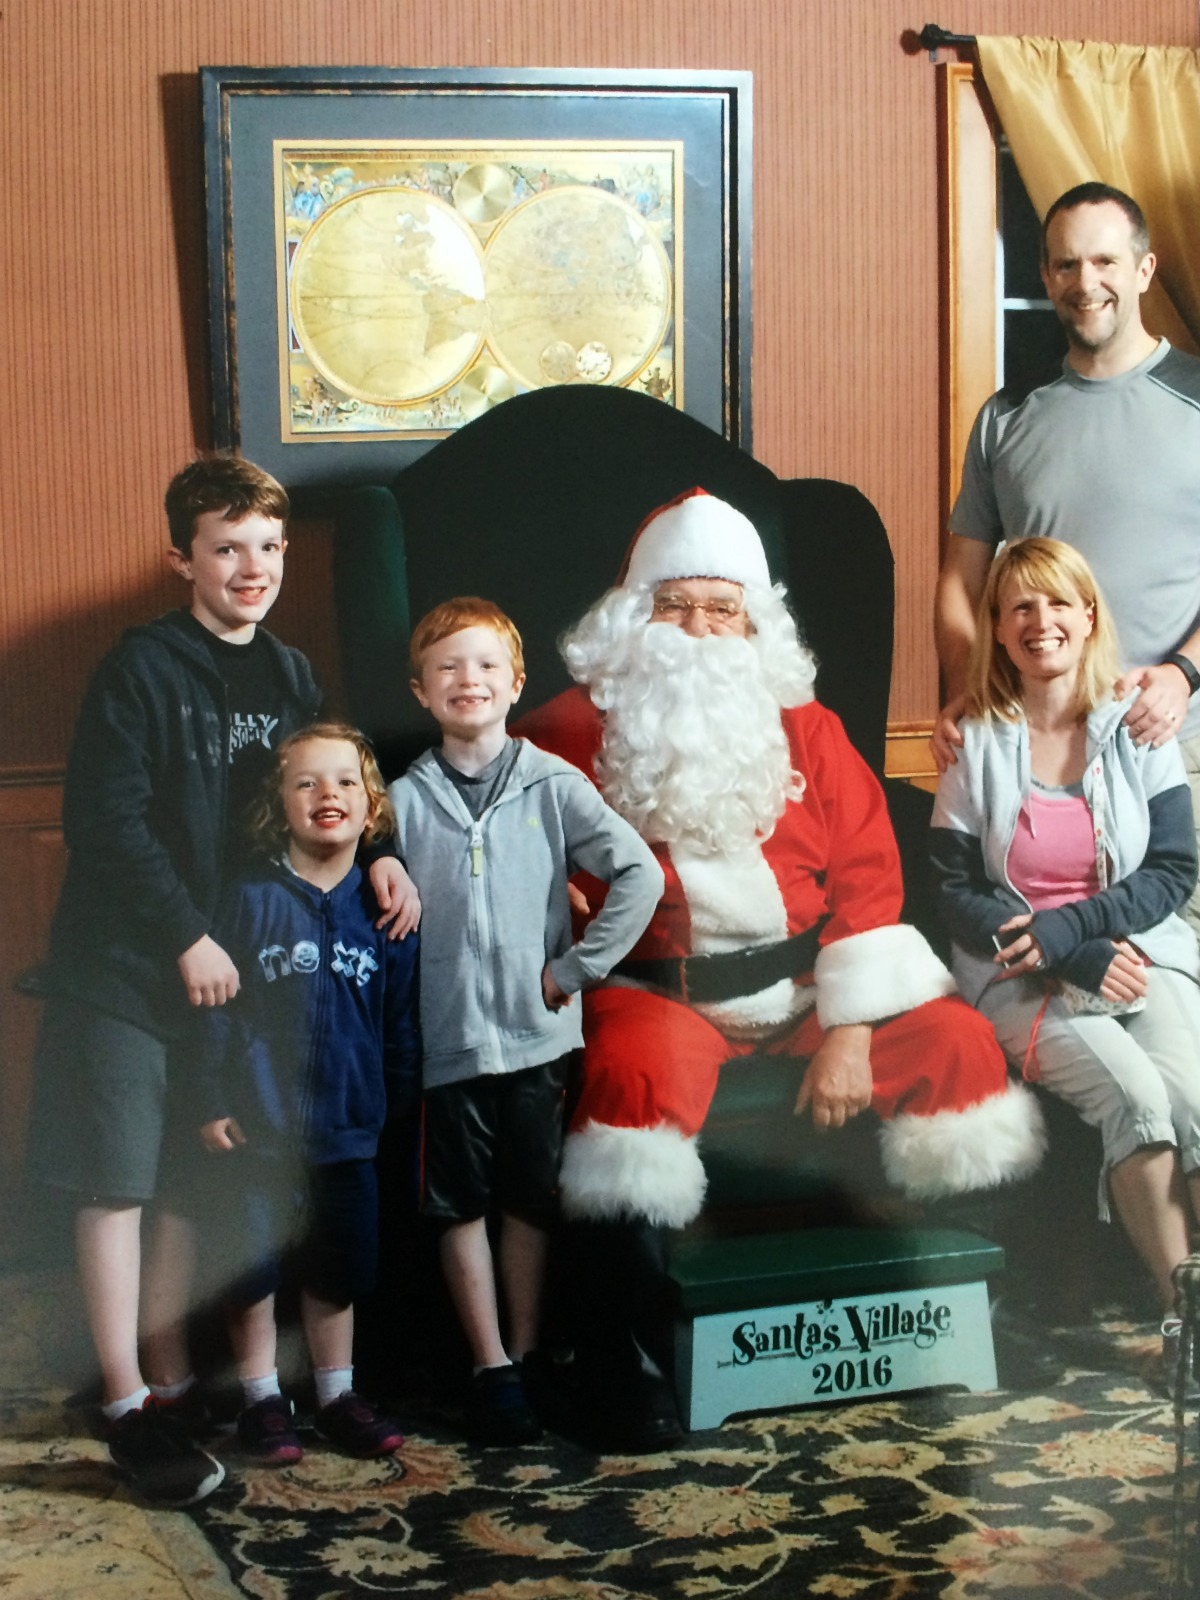 Our Family at Santas Village